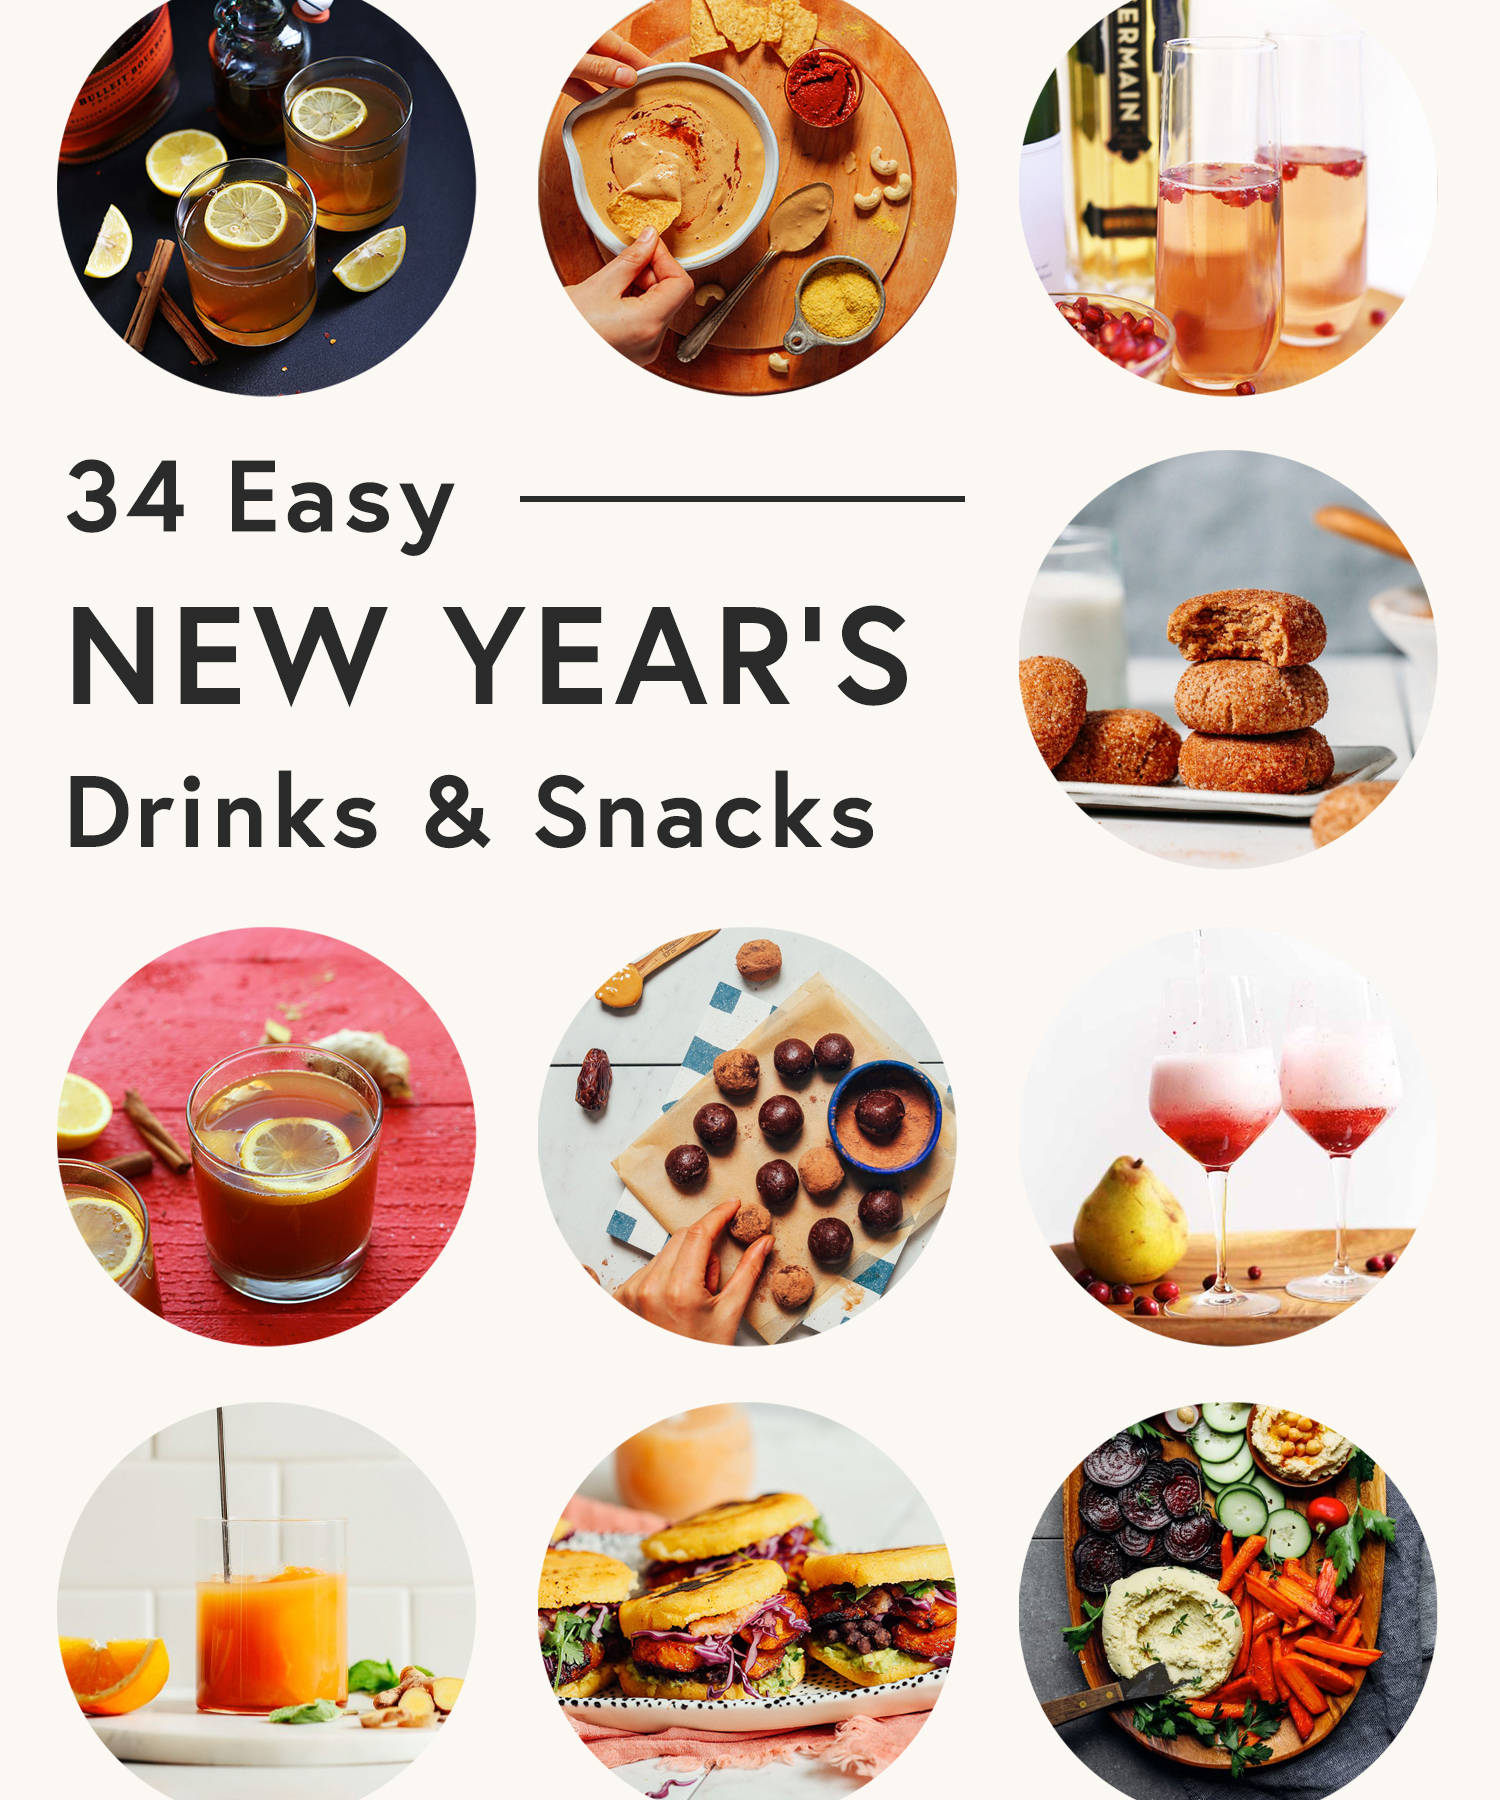 Assortment of snacks and drinks perfect for New Year's parties and beyond